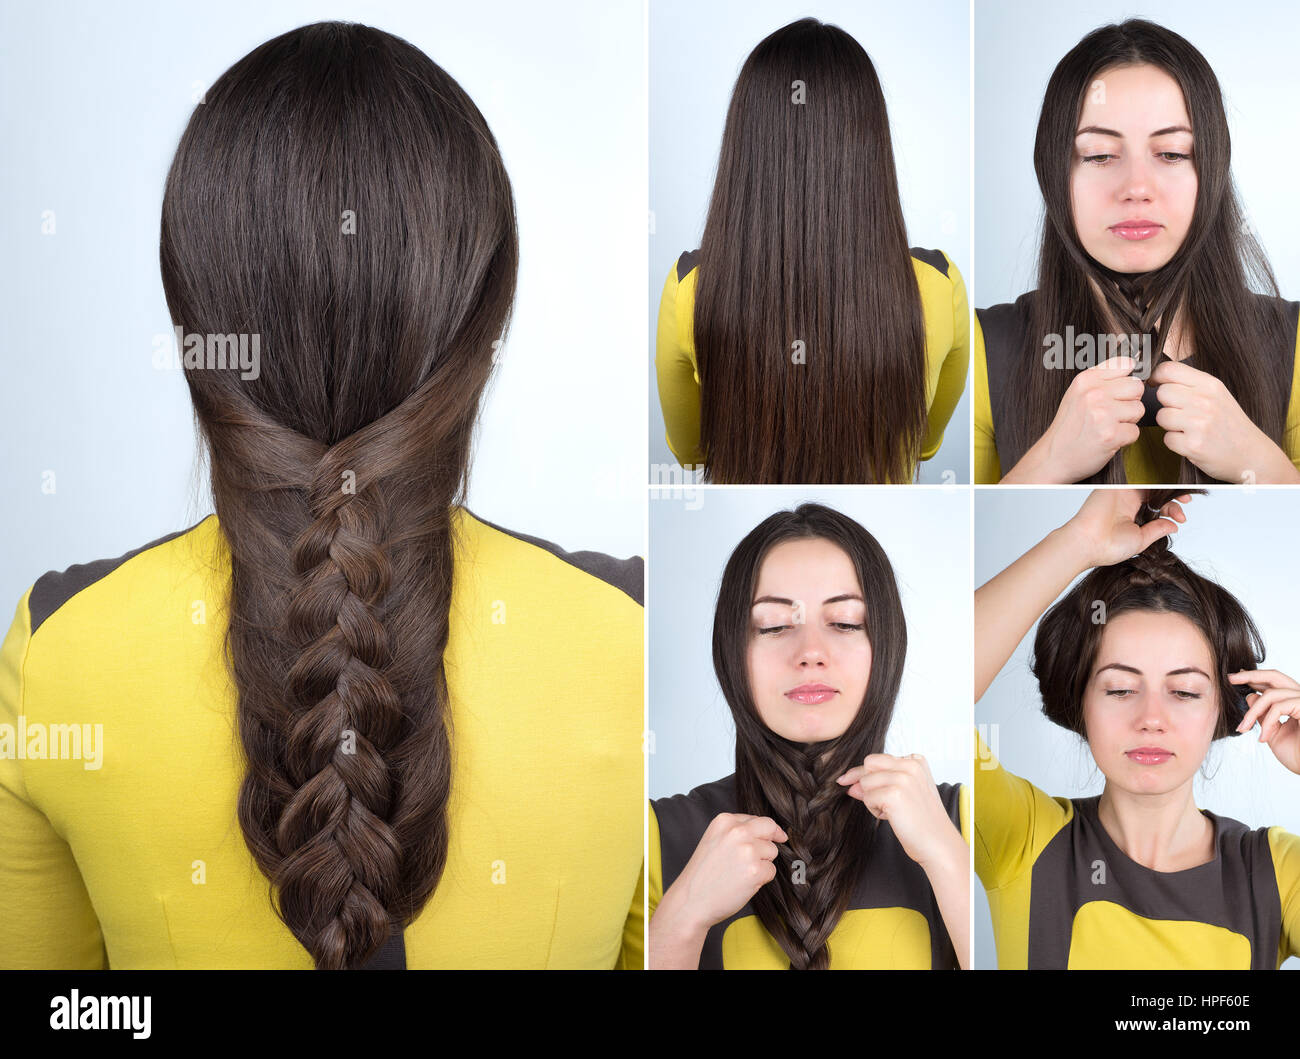 Simple Braid Hairstyle Tutorial Plait Hairstyle For Long